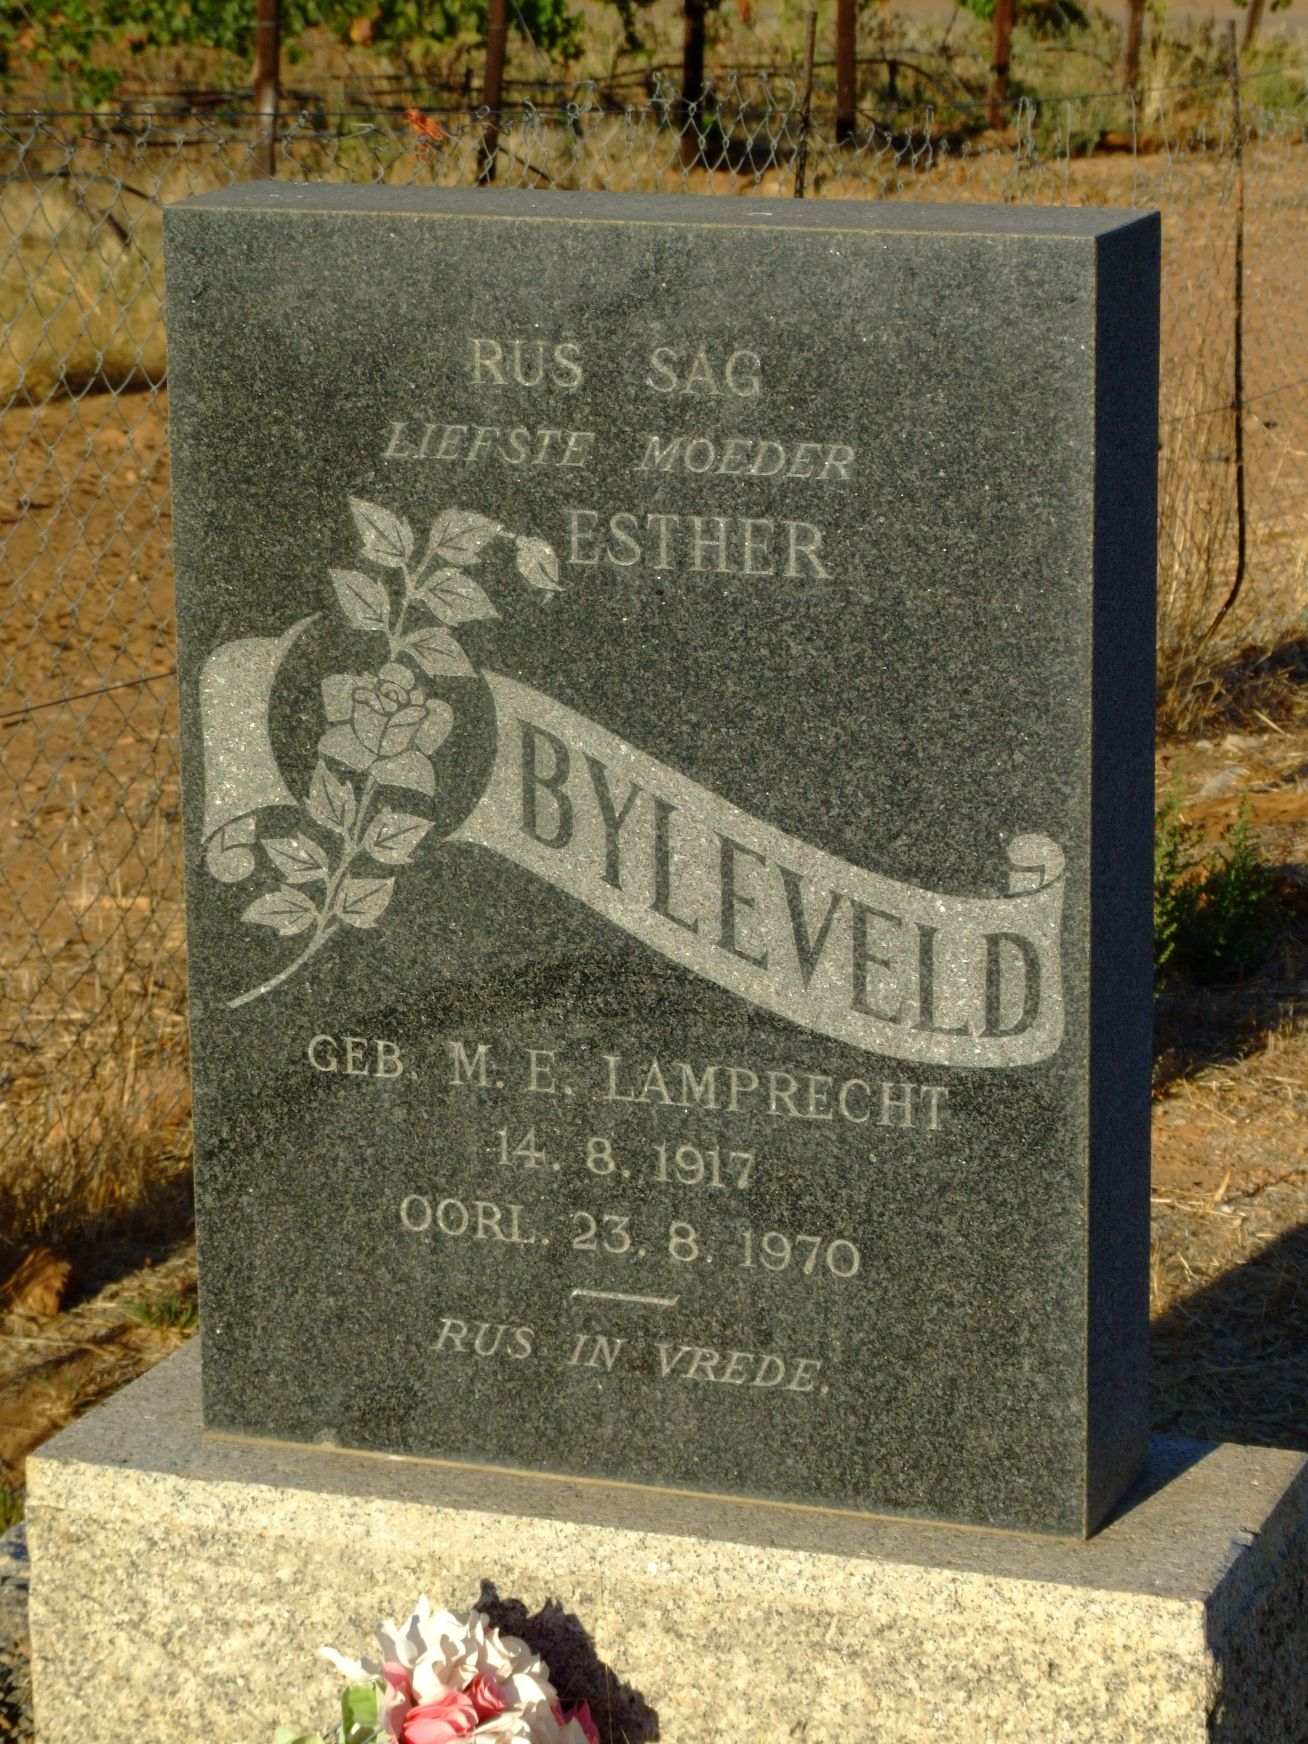 Byleveld, Esther (nee M. E. Lamprecht)